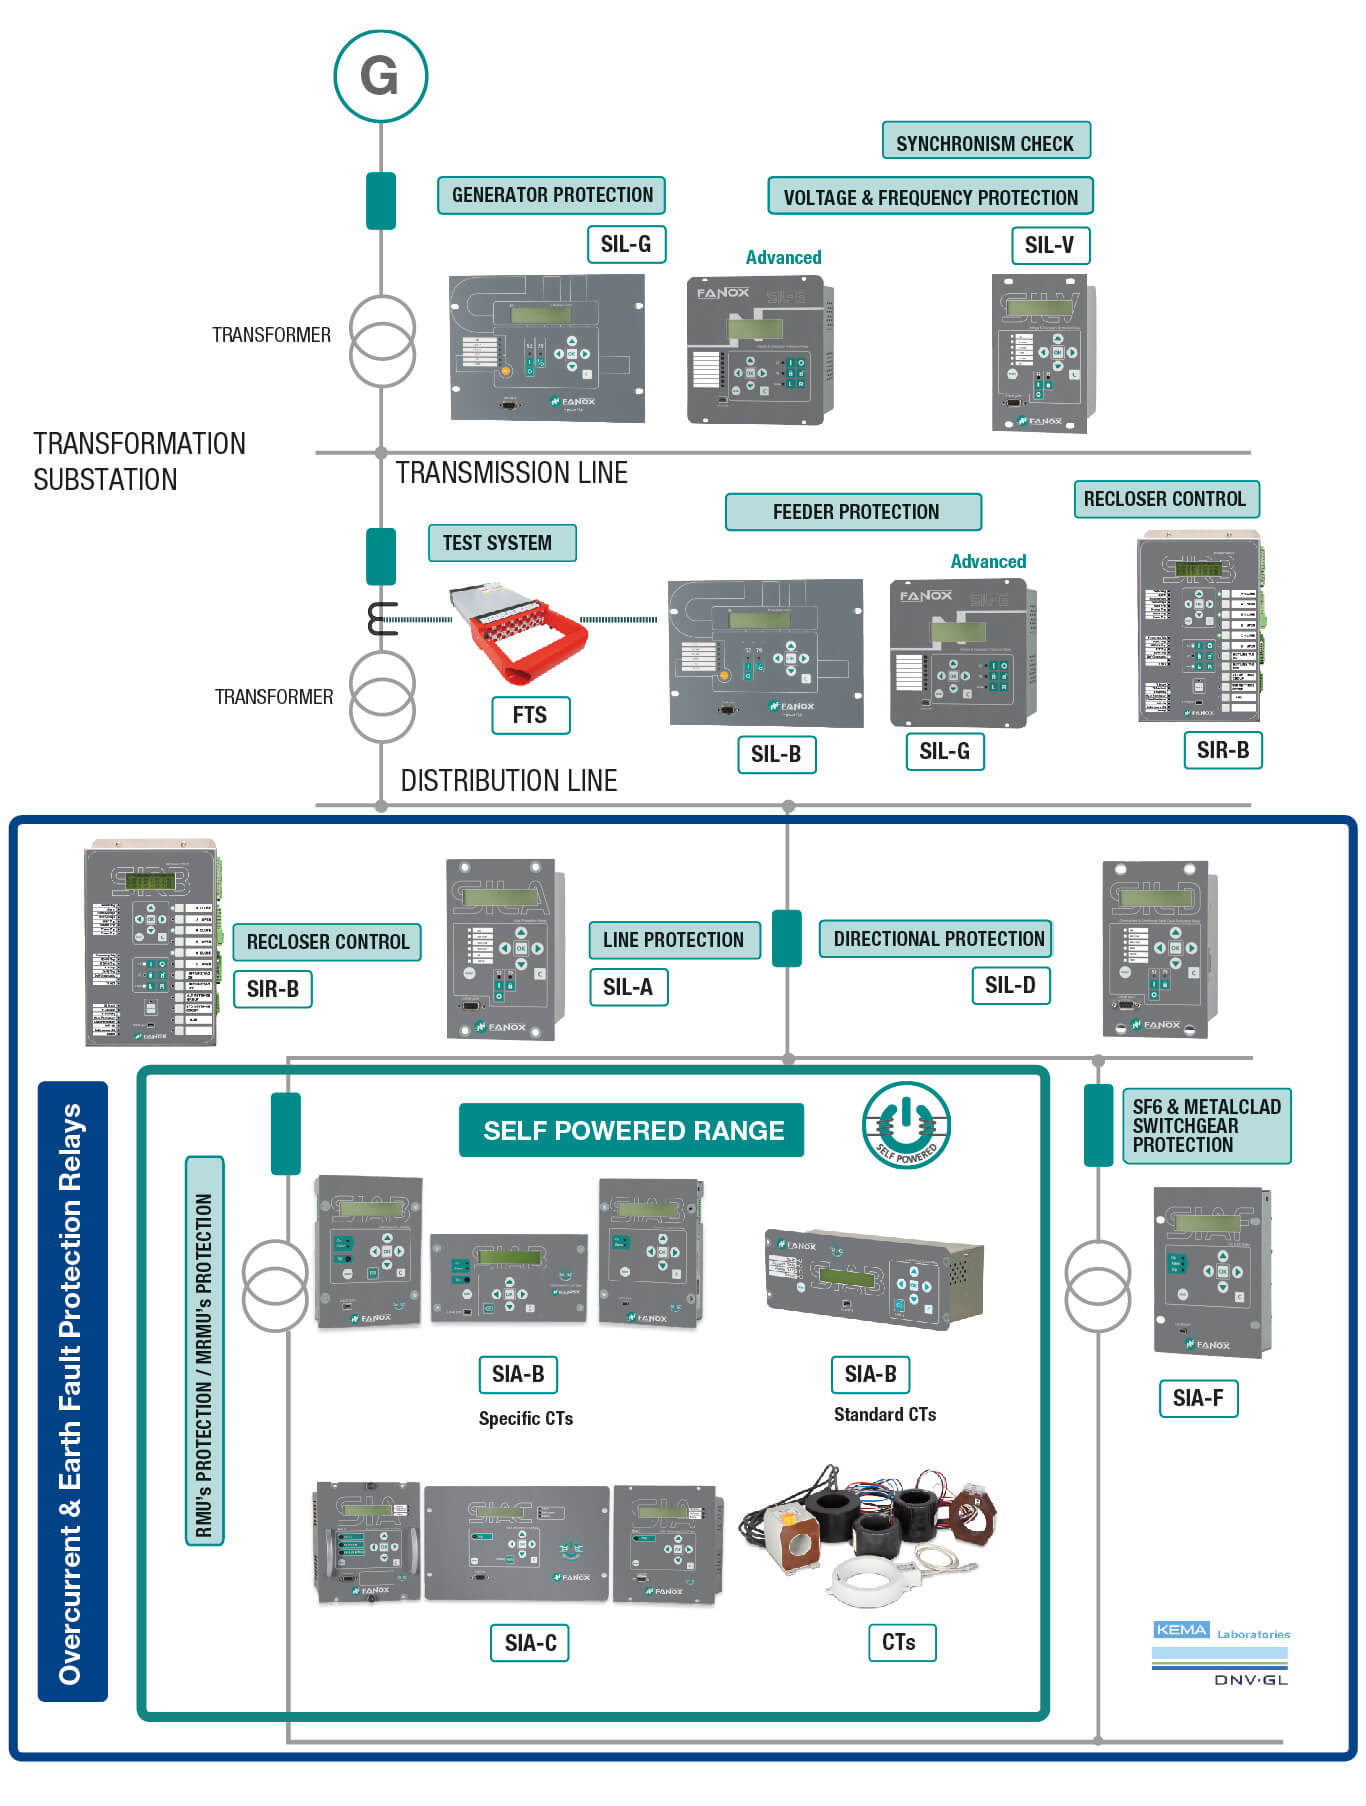 Protection Relays for Medium & High Voltage Distribution and